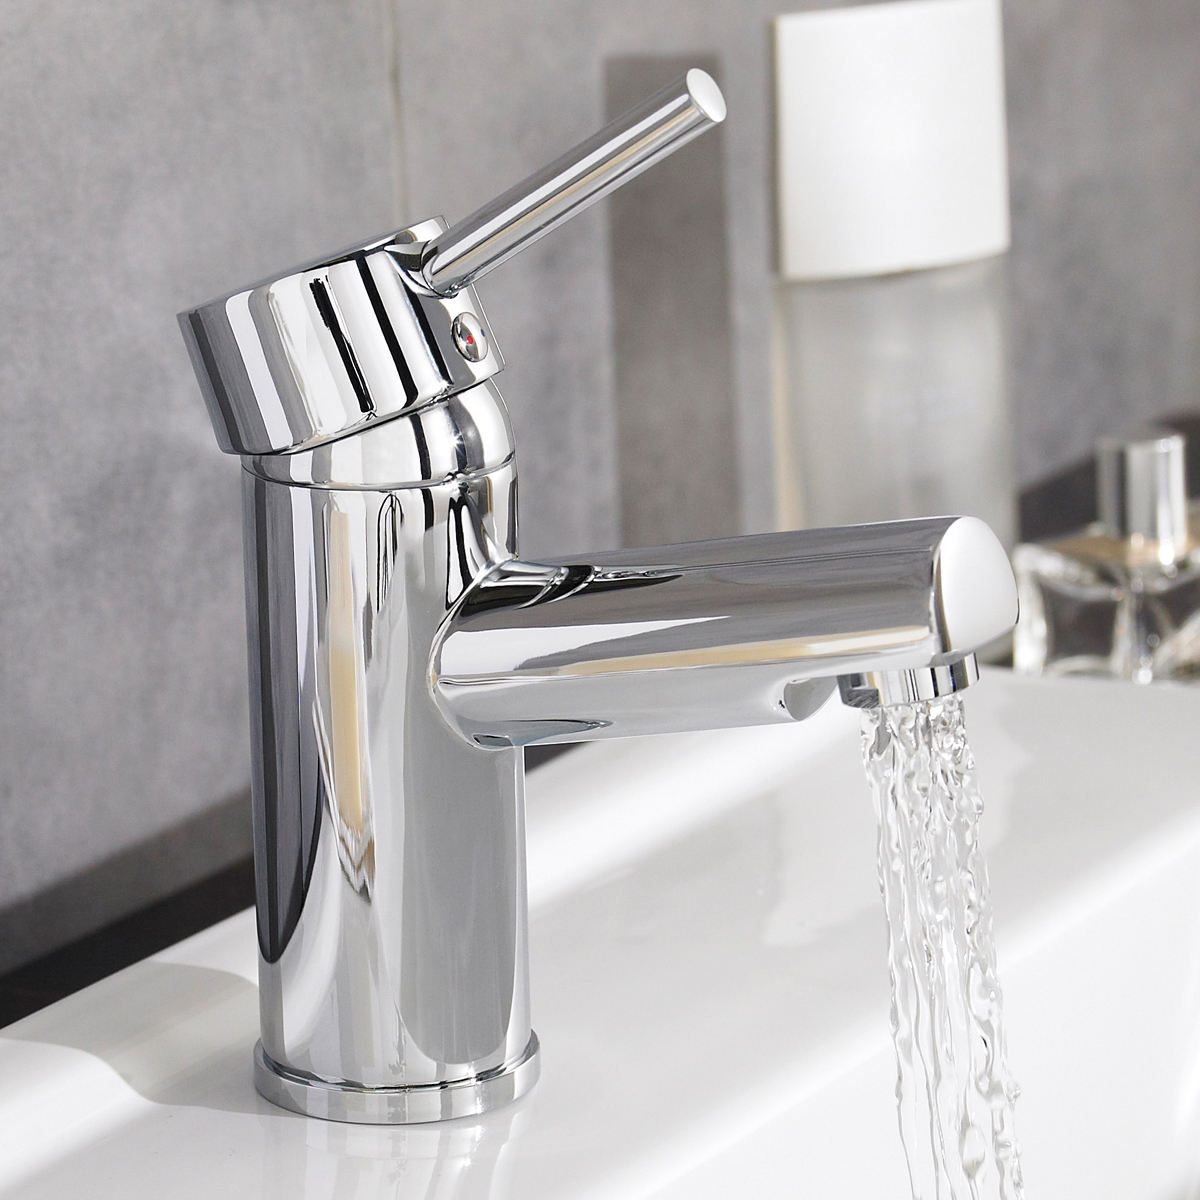 Manton Mono Basin Mixer with Clicker Waste